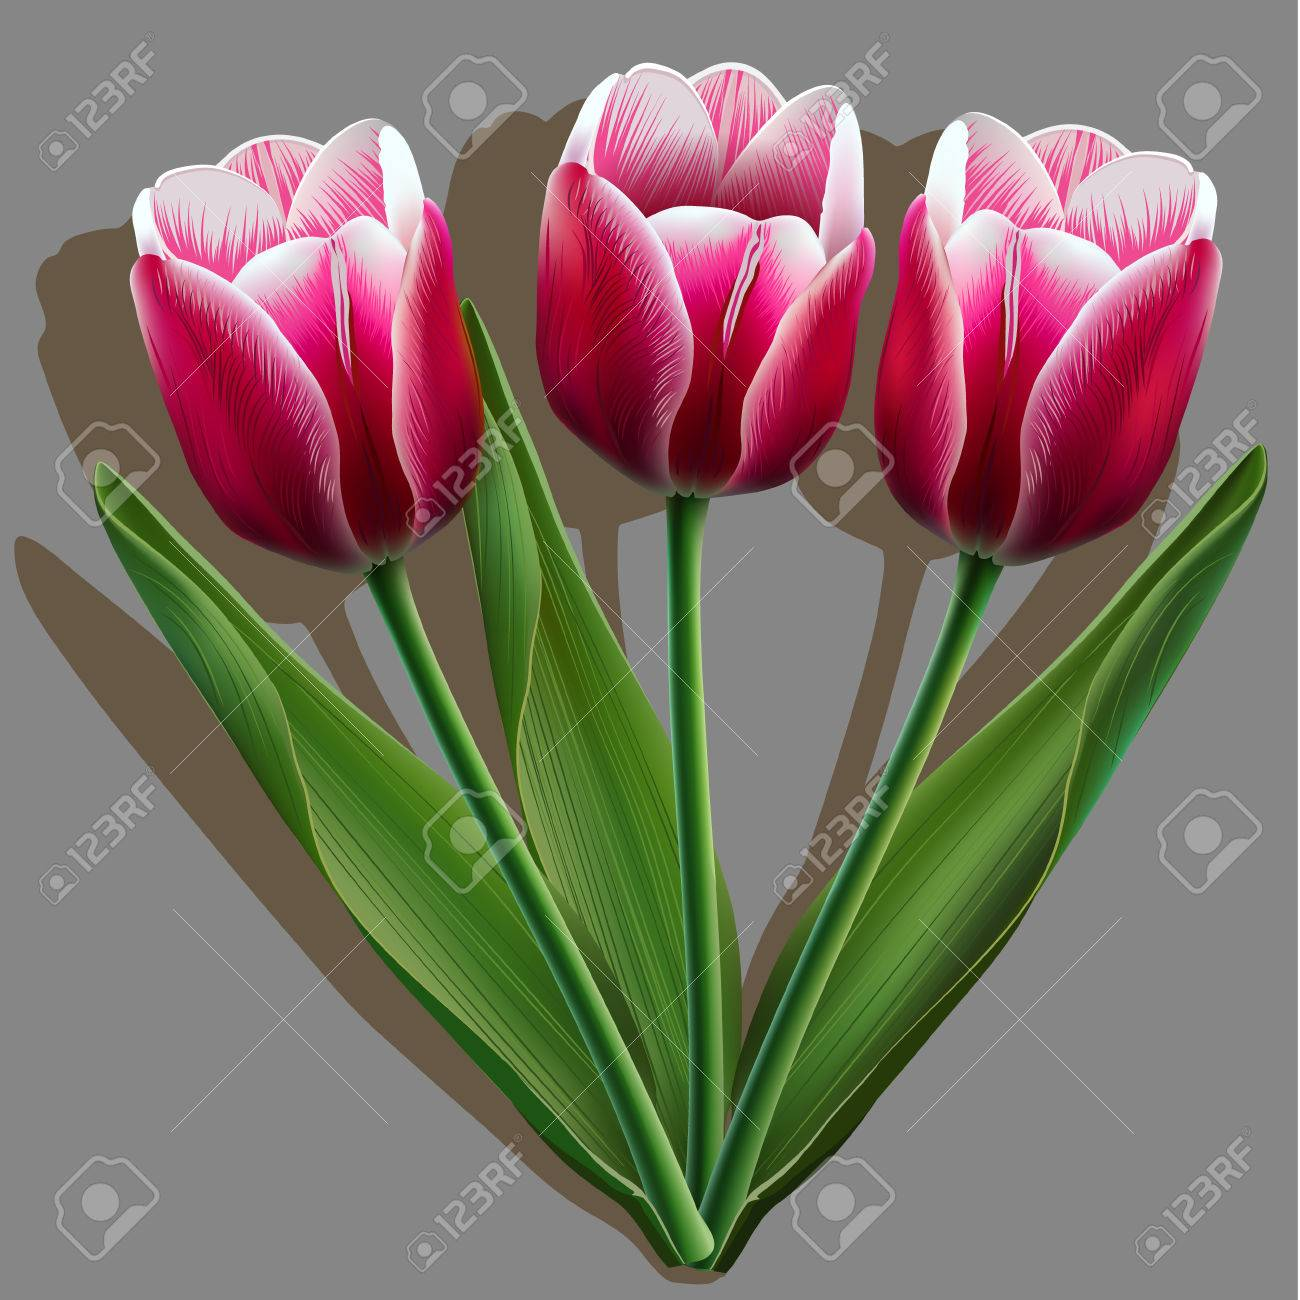 65cef9872ddc8 Bouquet of pink tulips on gray background with shadow Stock Vector -  58586410